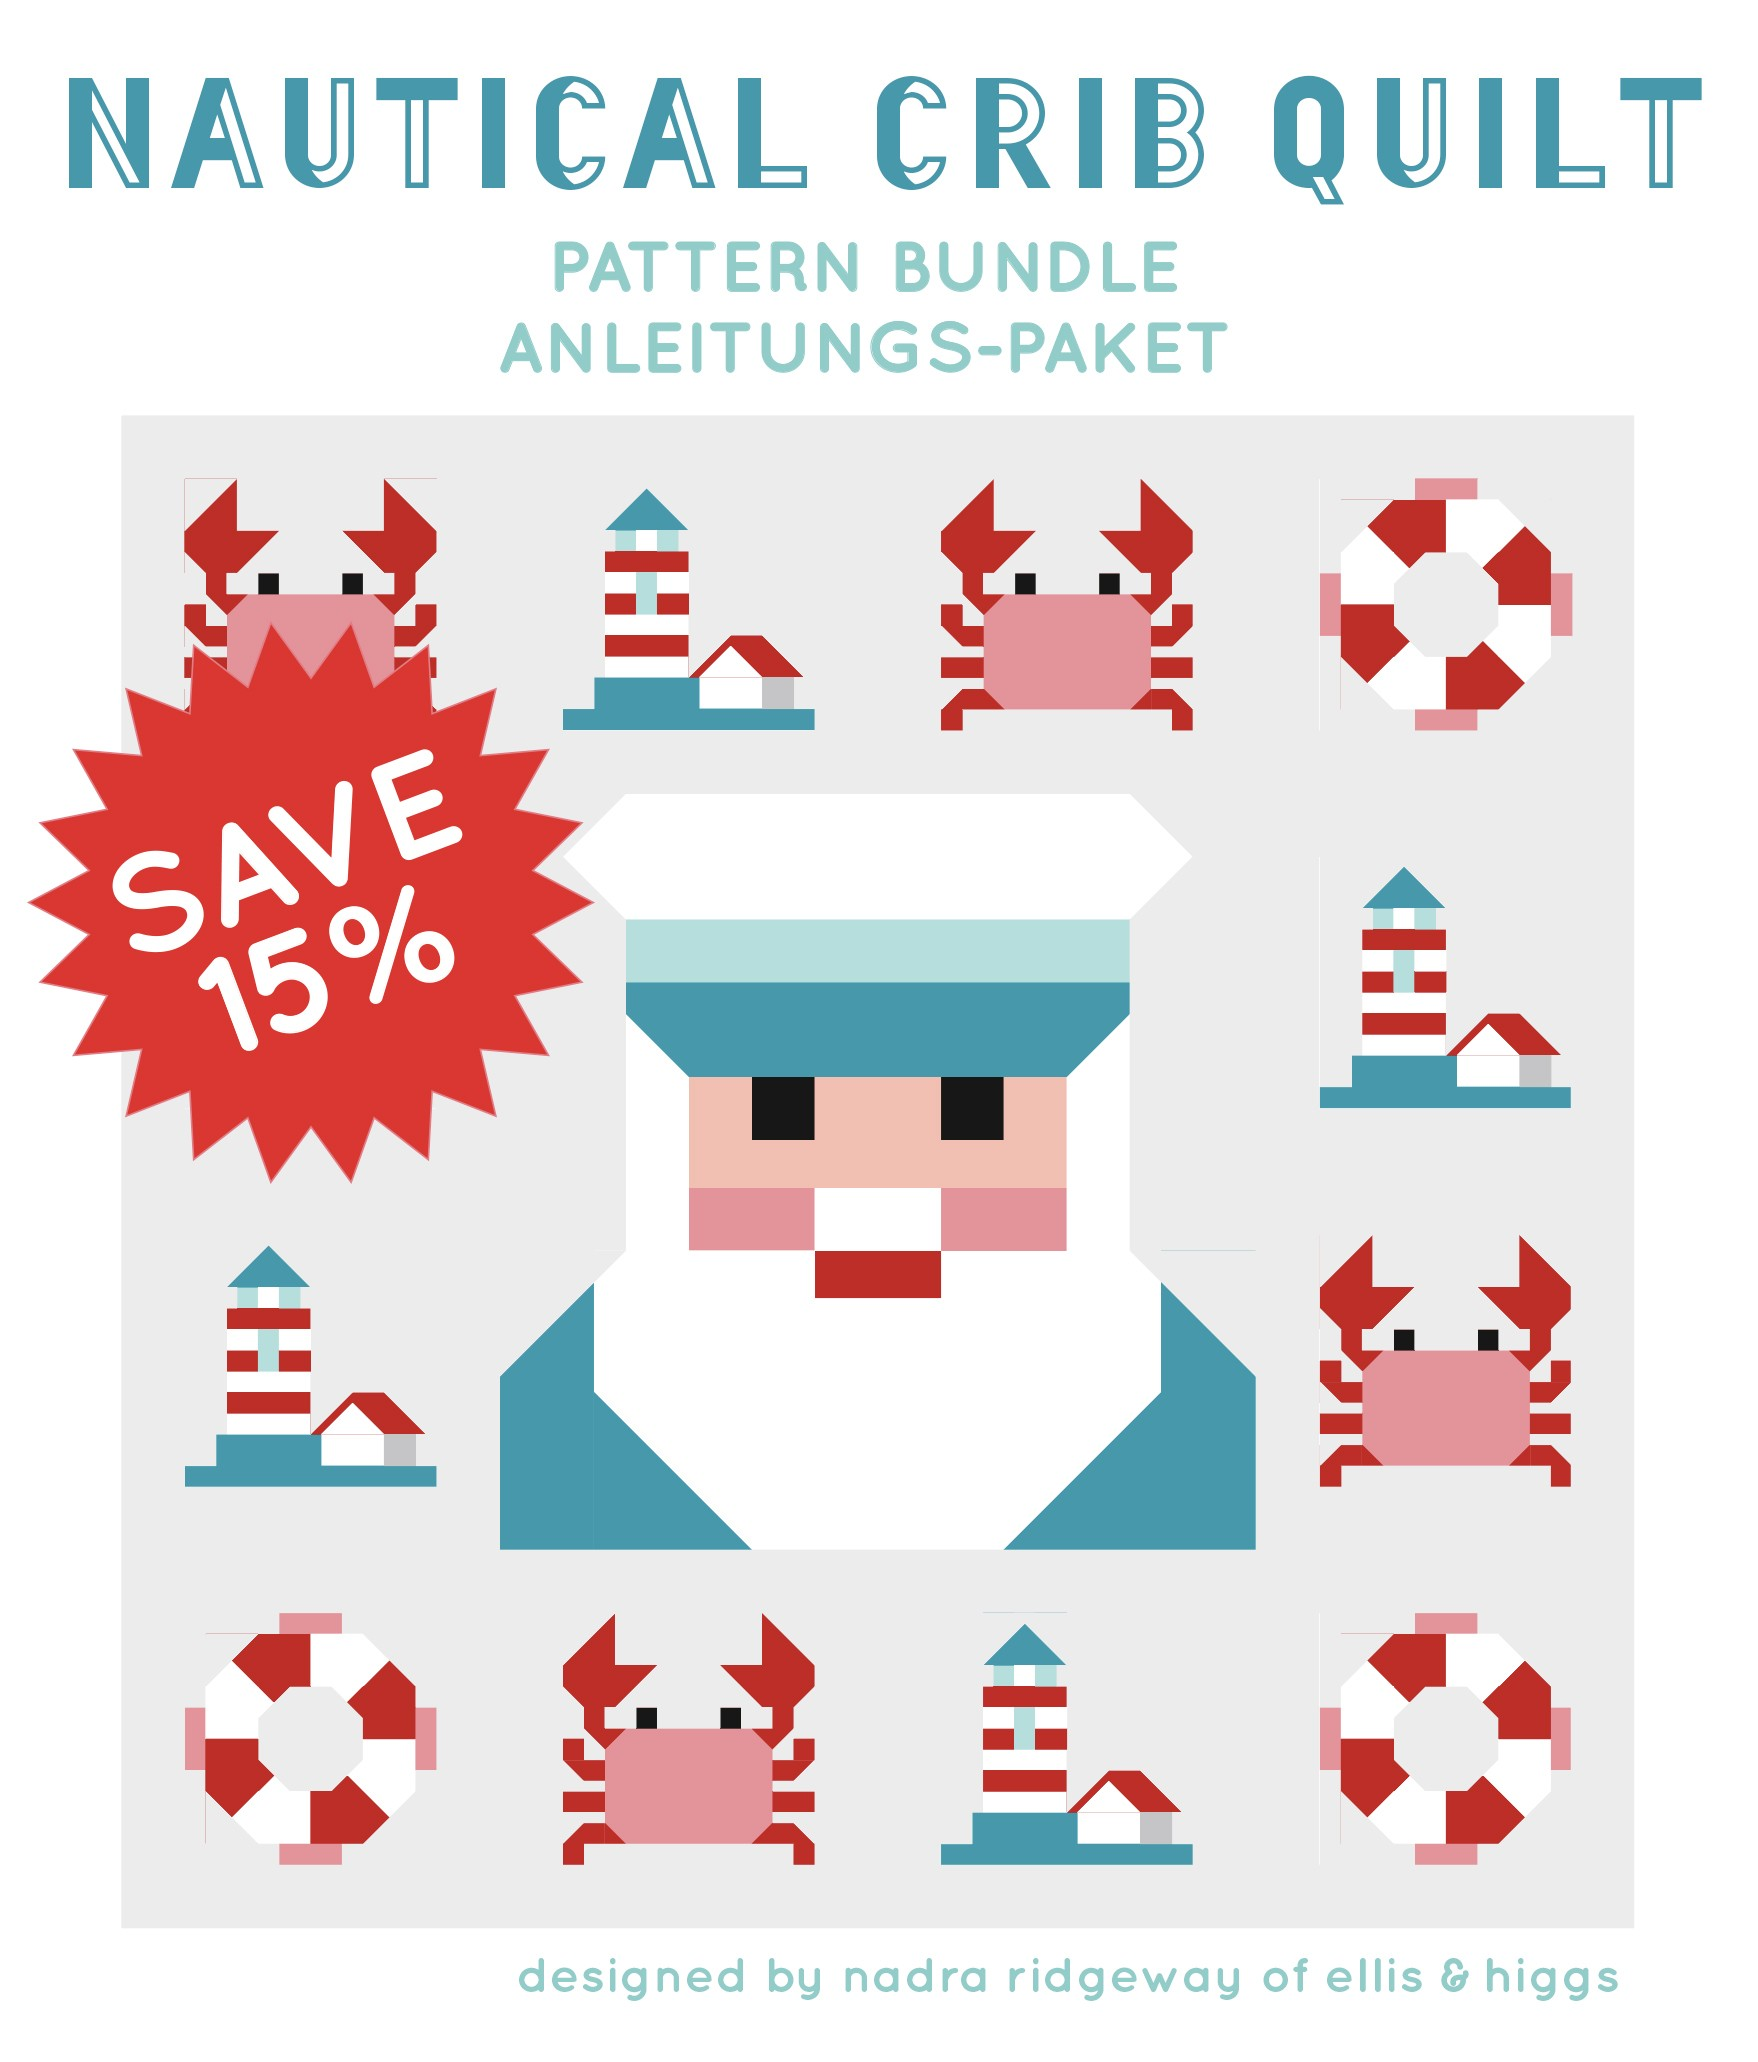 Nautical crib quilt pattern